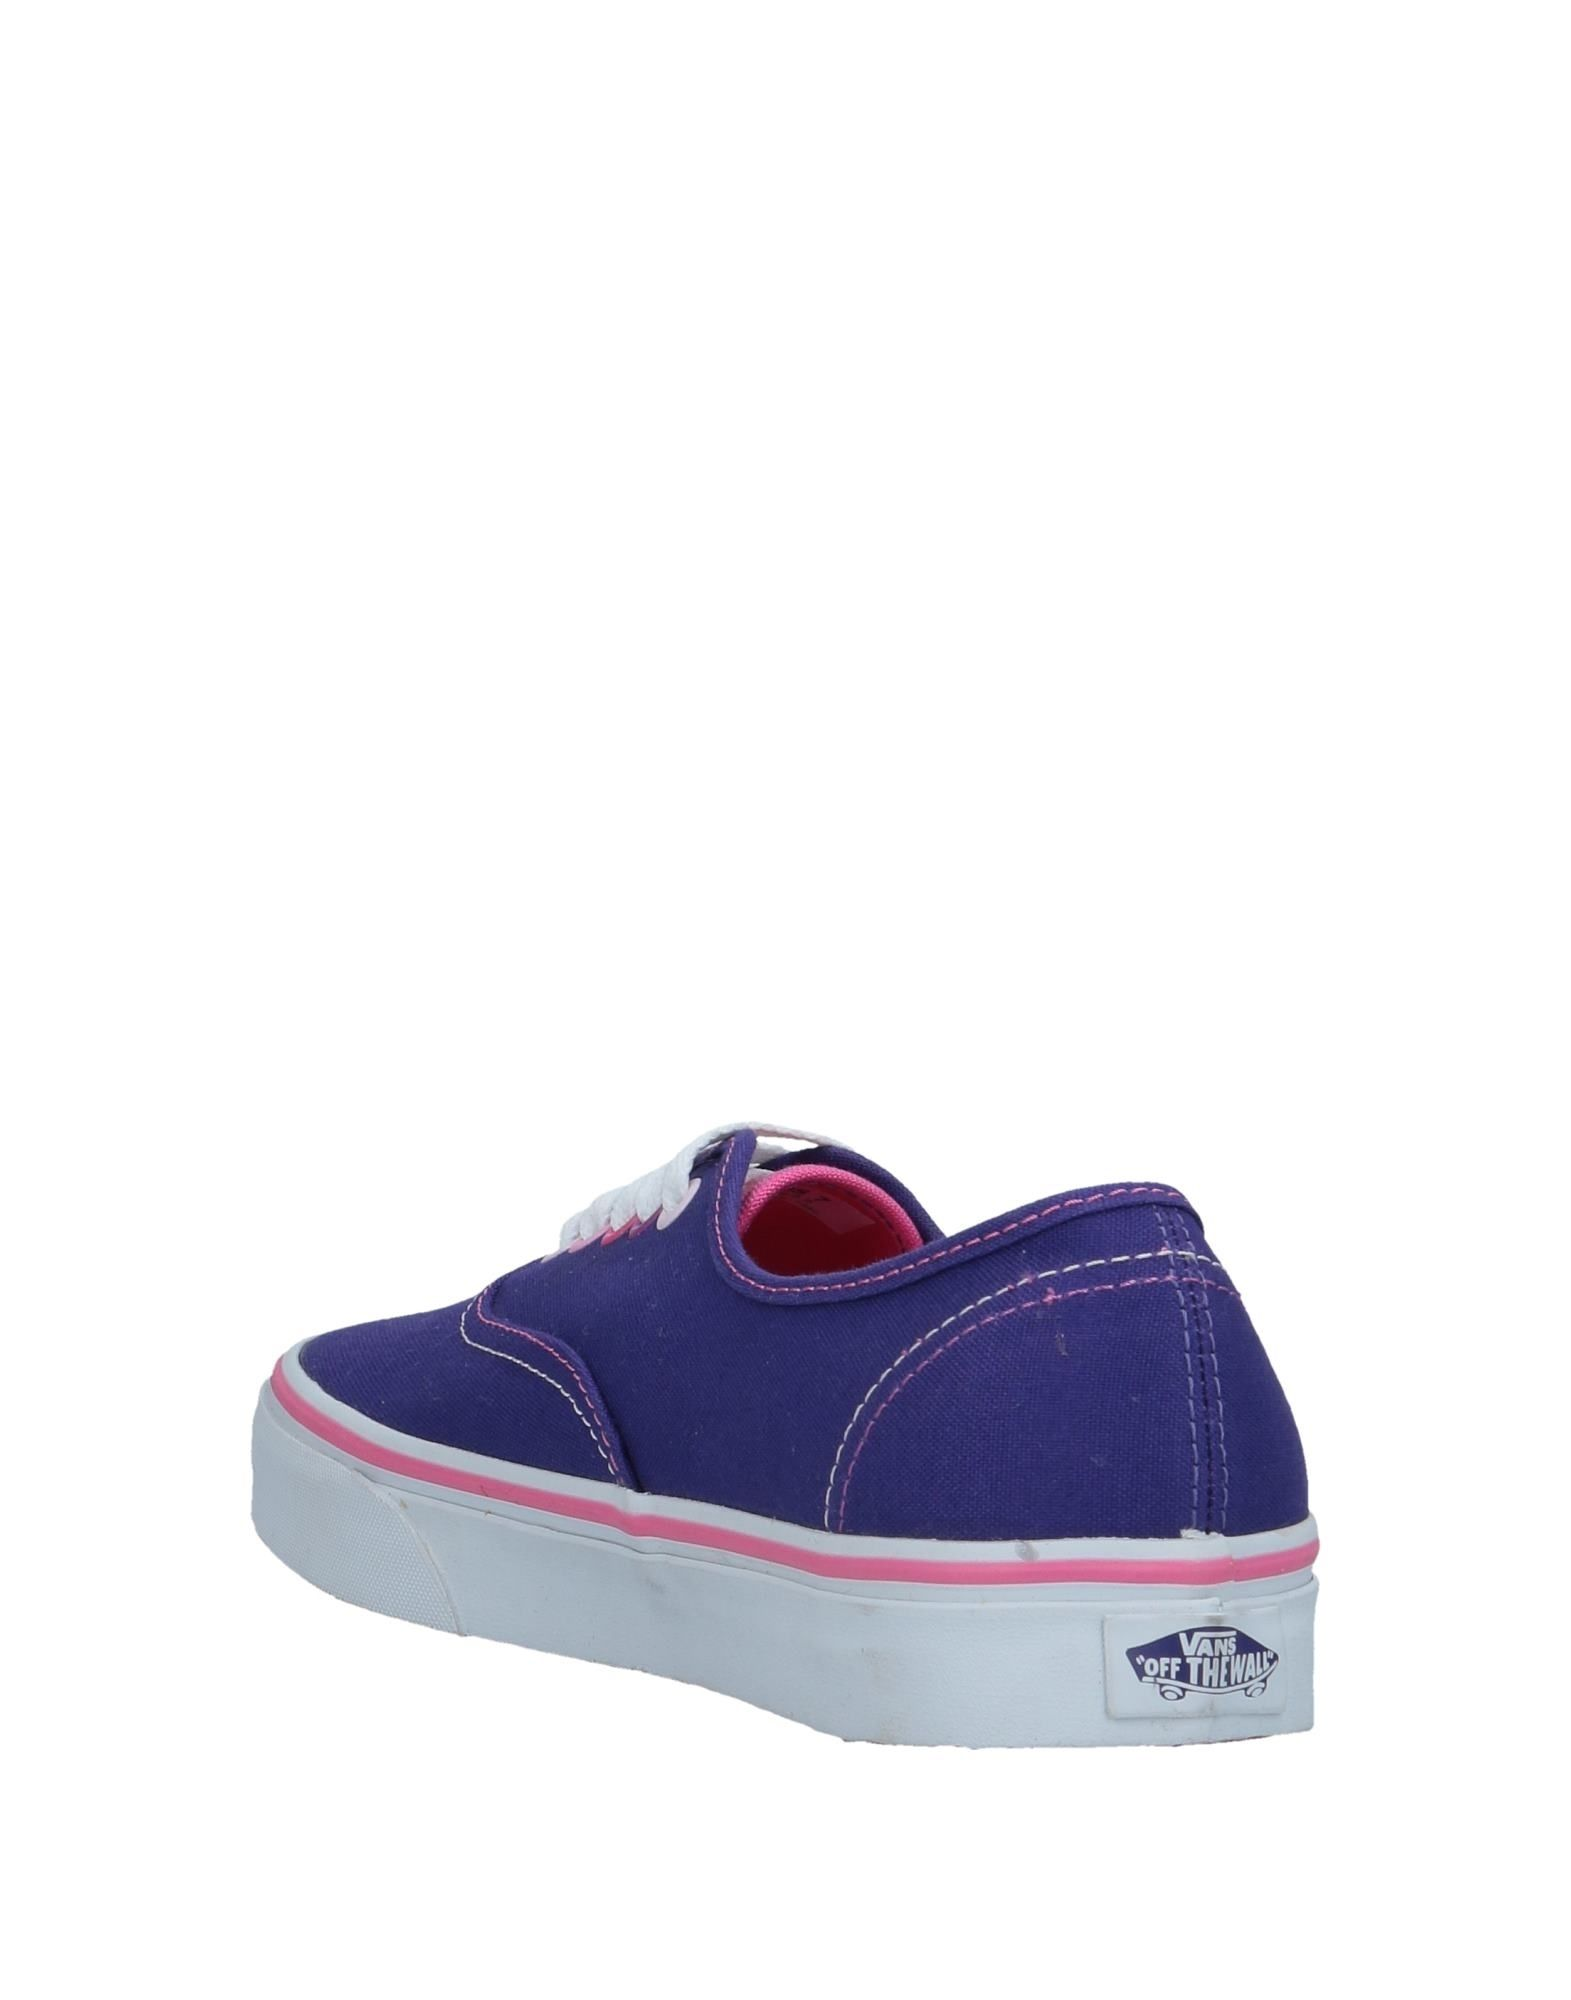 Sneakers - Vans Donna - Sneakers 11527967WS e19f26